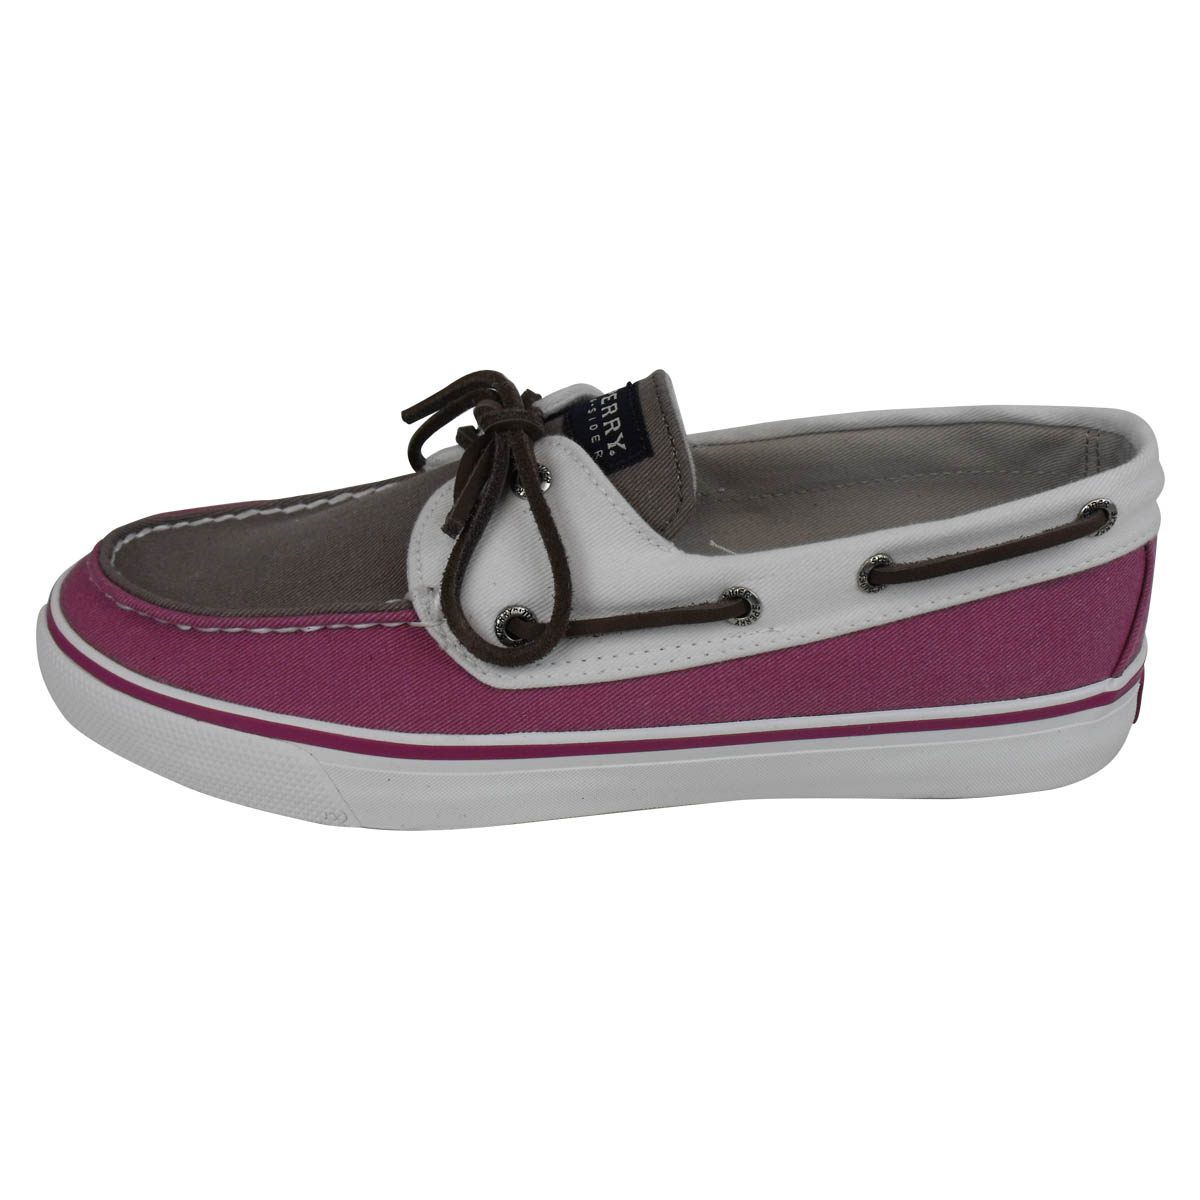 Sperry Top Sider Ladies Deck Shoes